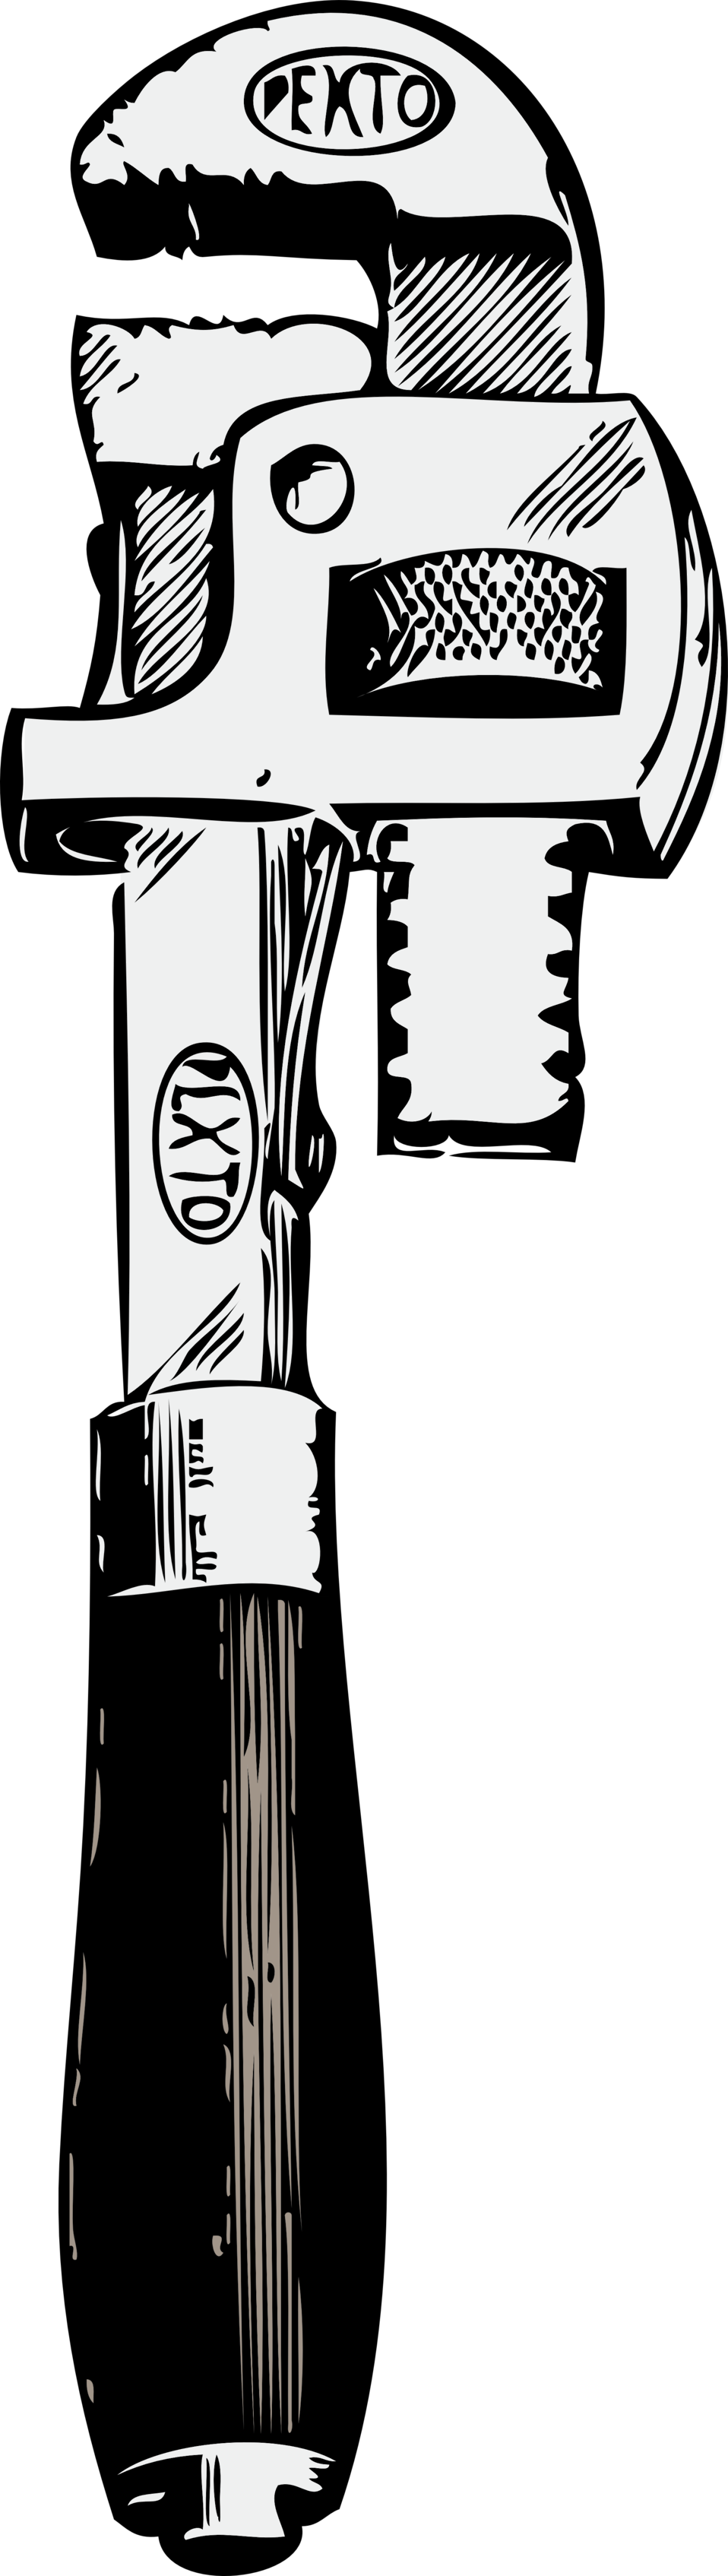 vector black and white stock Public domain clip art. Plumbers wrench clipart